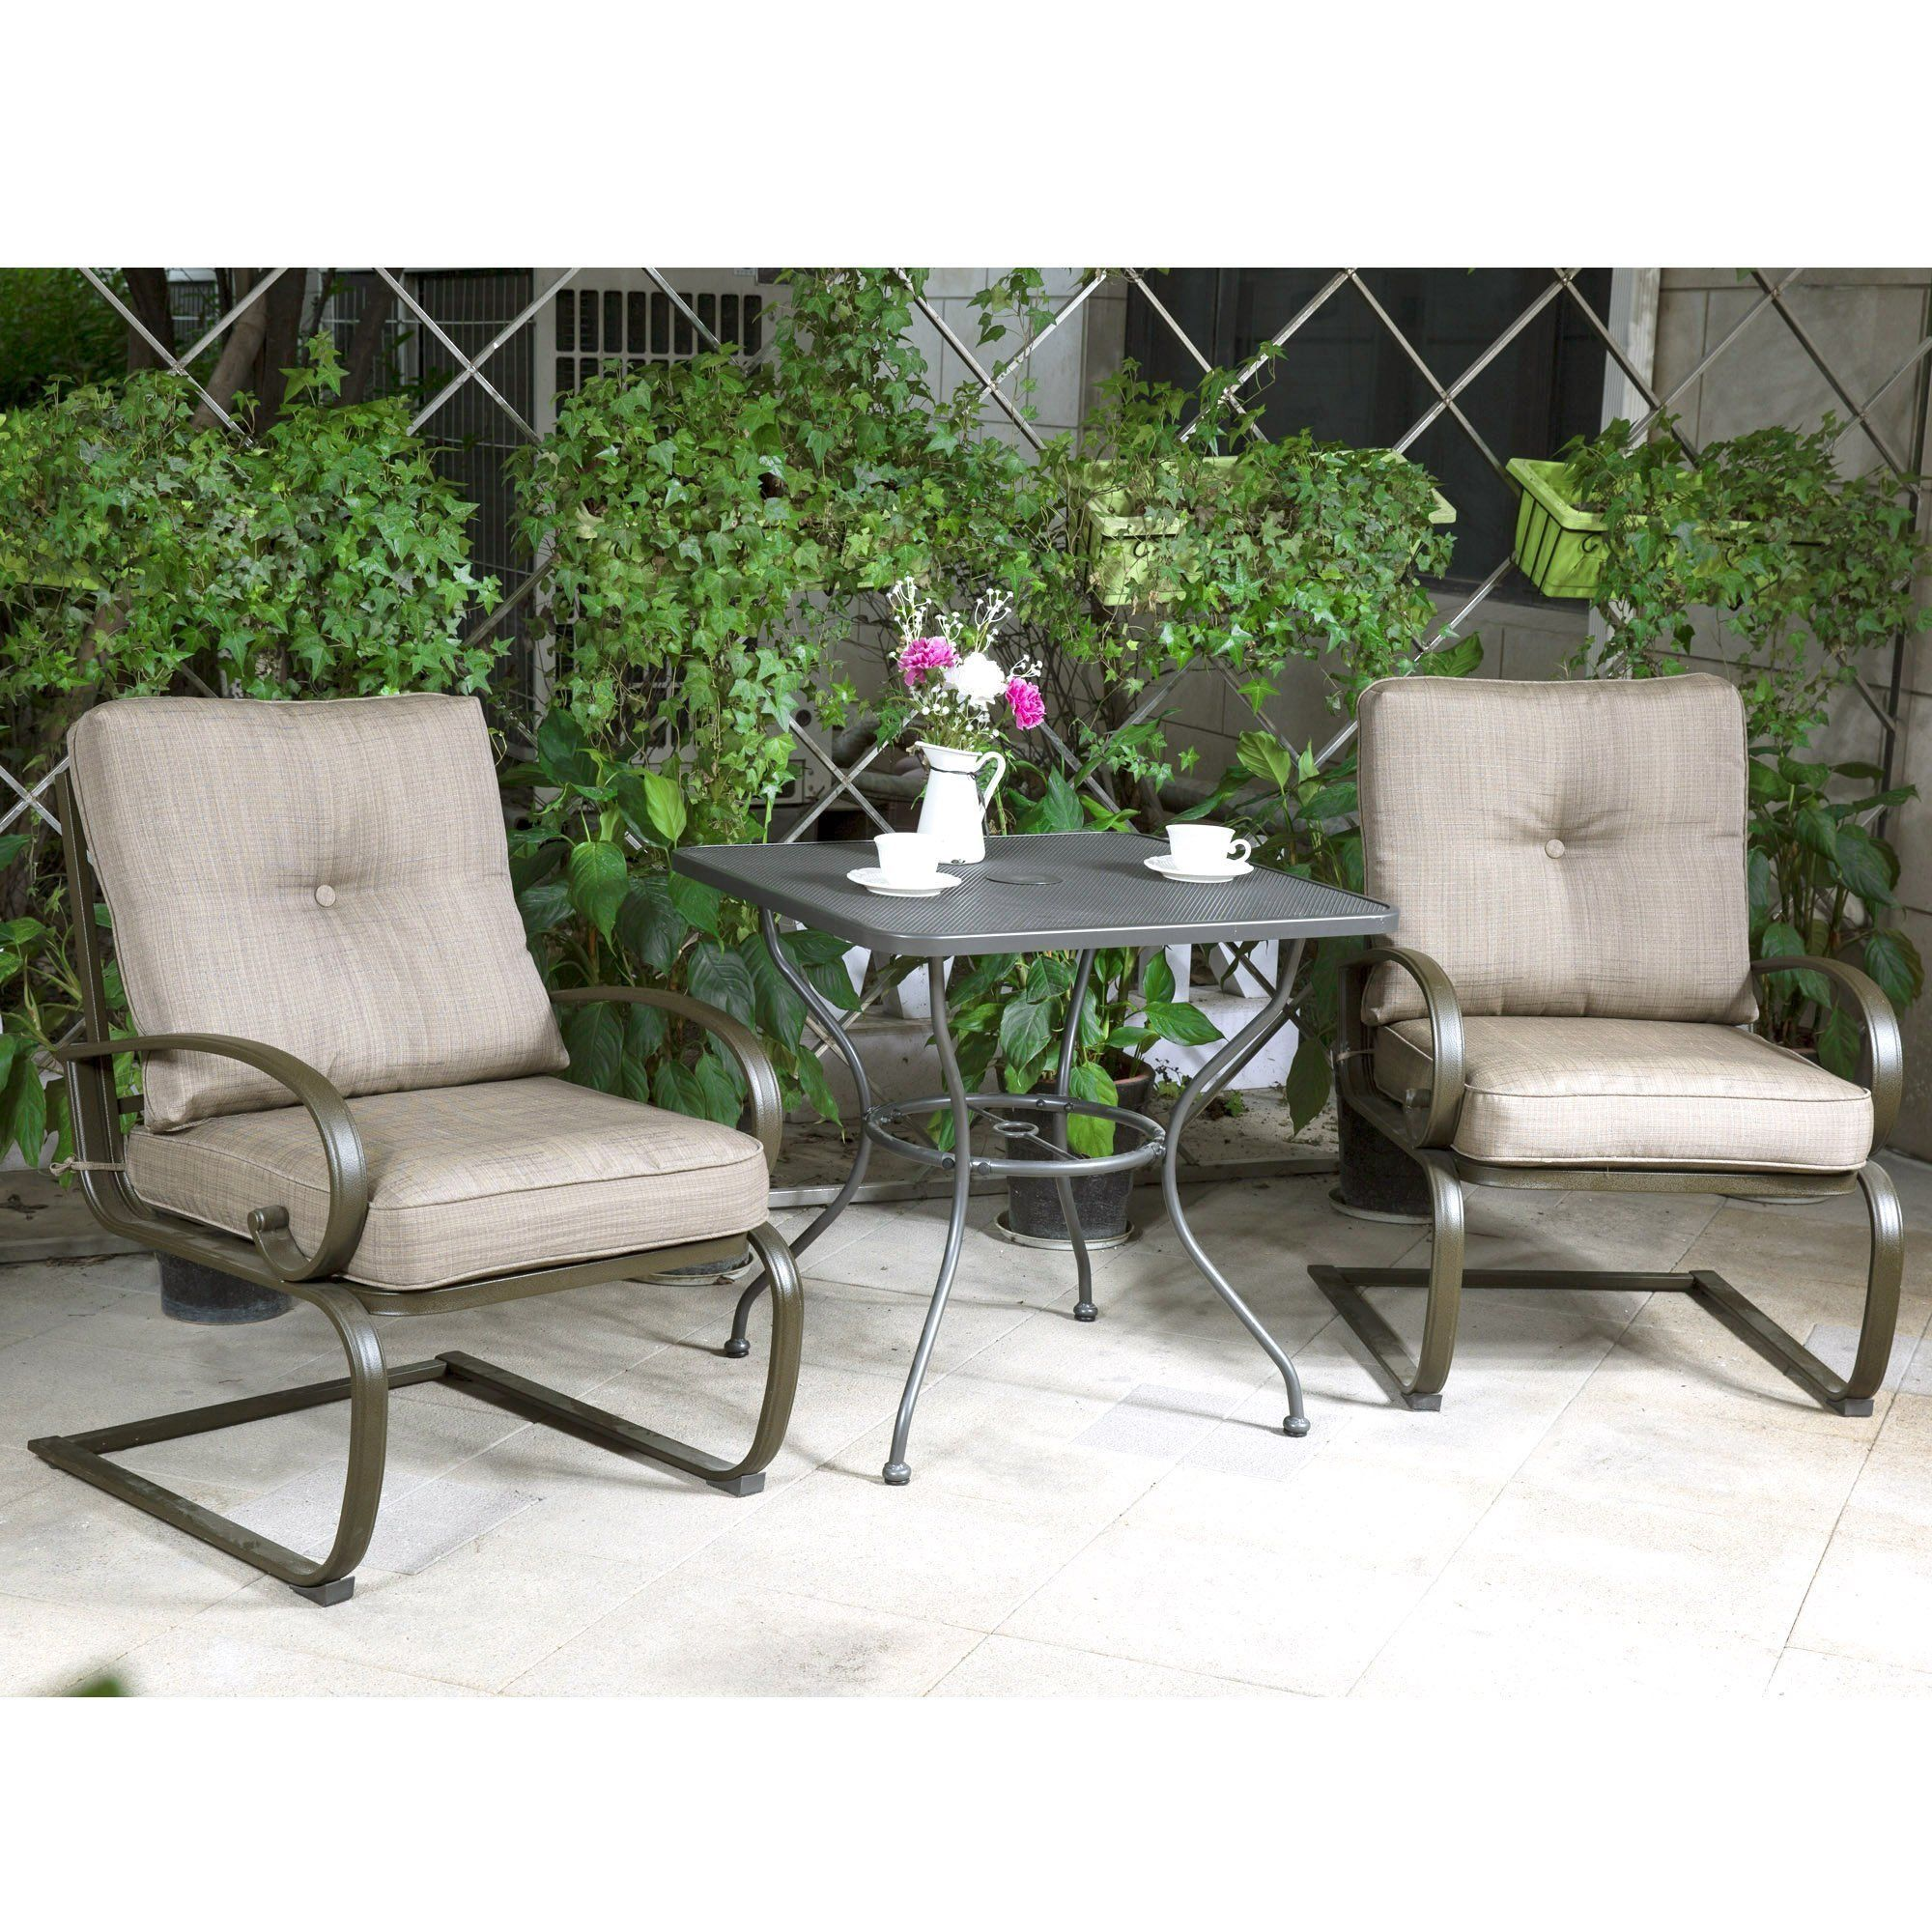 Outdoor pc bistro patio furniture wrought iron set inches